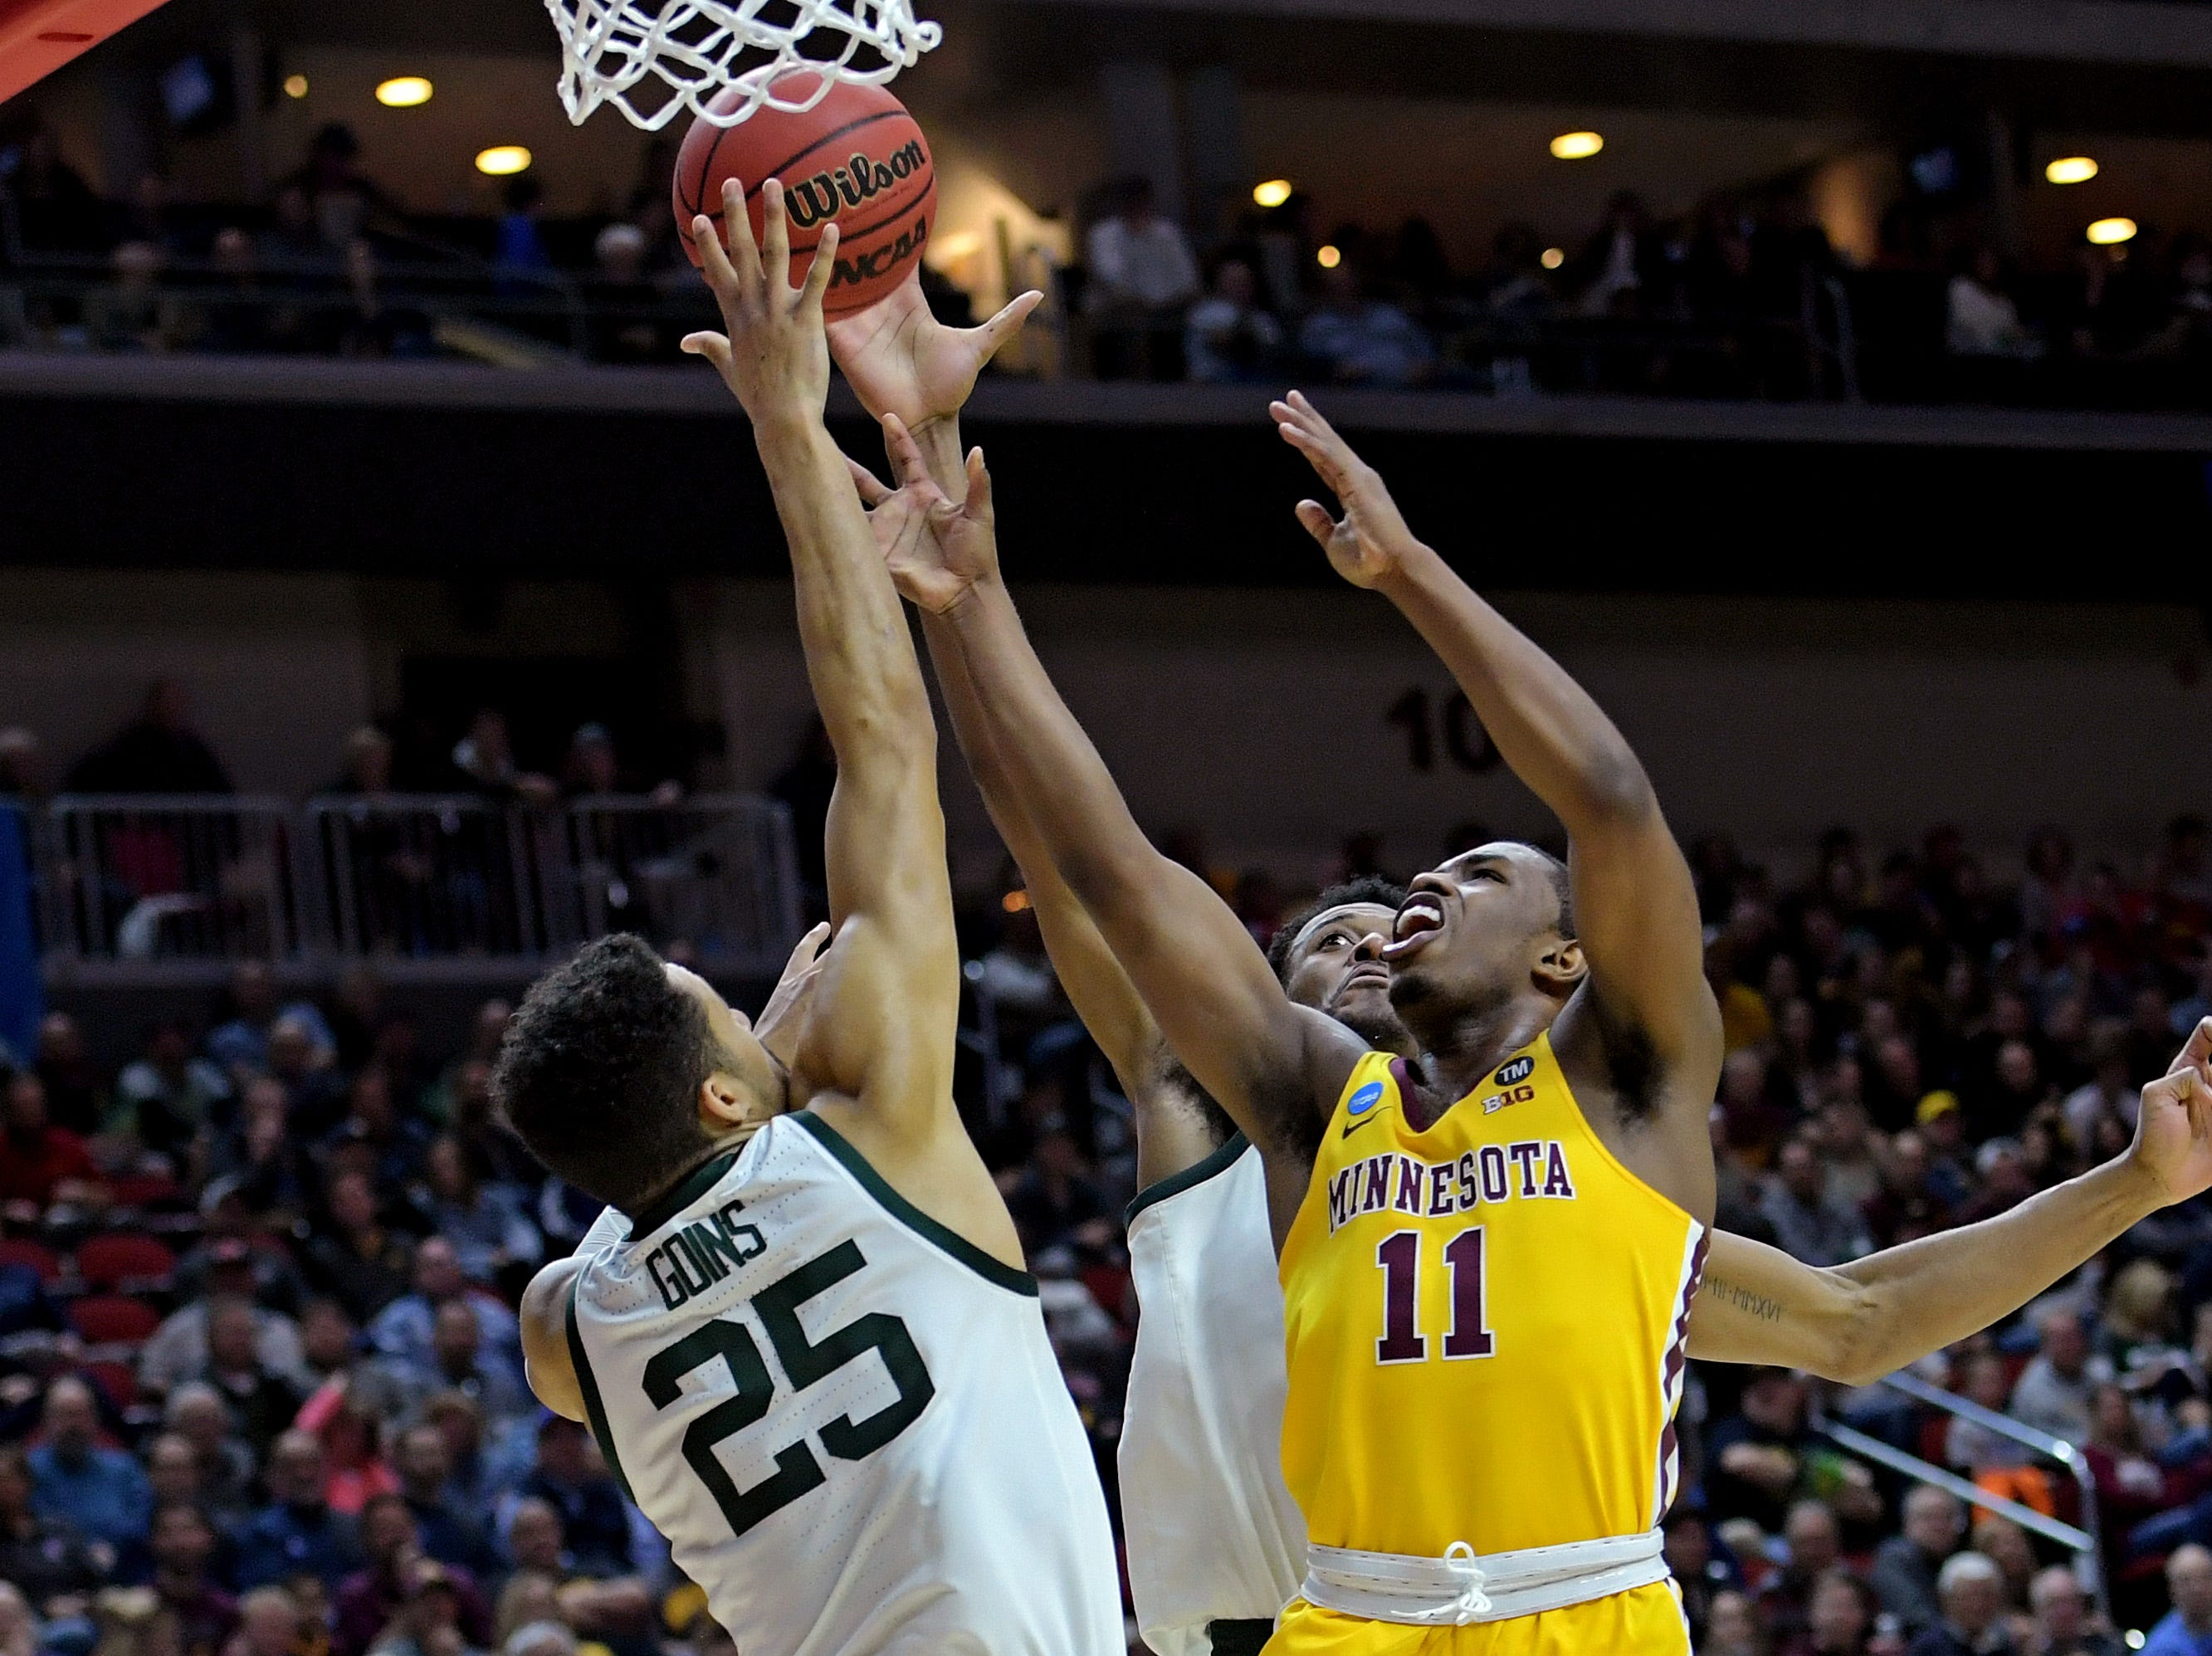 Mar 23, 2019; Des Moines, IA, United States; Minnesota Golden Gophers guard Isaiah Washington (11) shoots the ball against Michigan State Spartans forward Kenny Goins (25) during the first half in the second round of the 2019 NCAA Tournament at Wells Fargo Arena. Mandatory Credit: Steven Branscombe-USA TODAY Sports